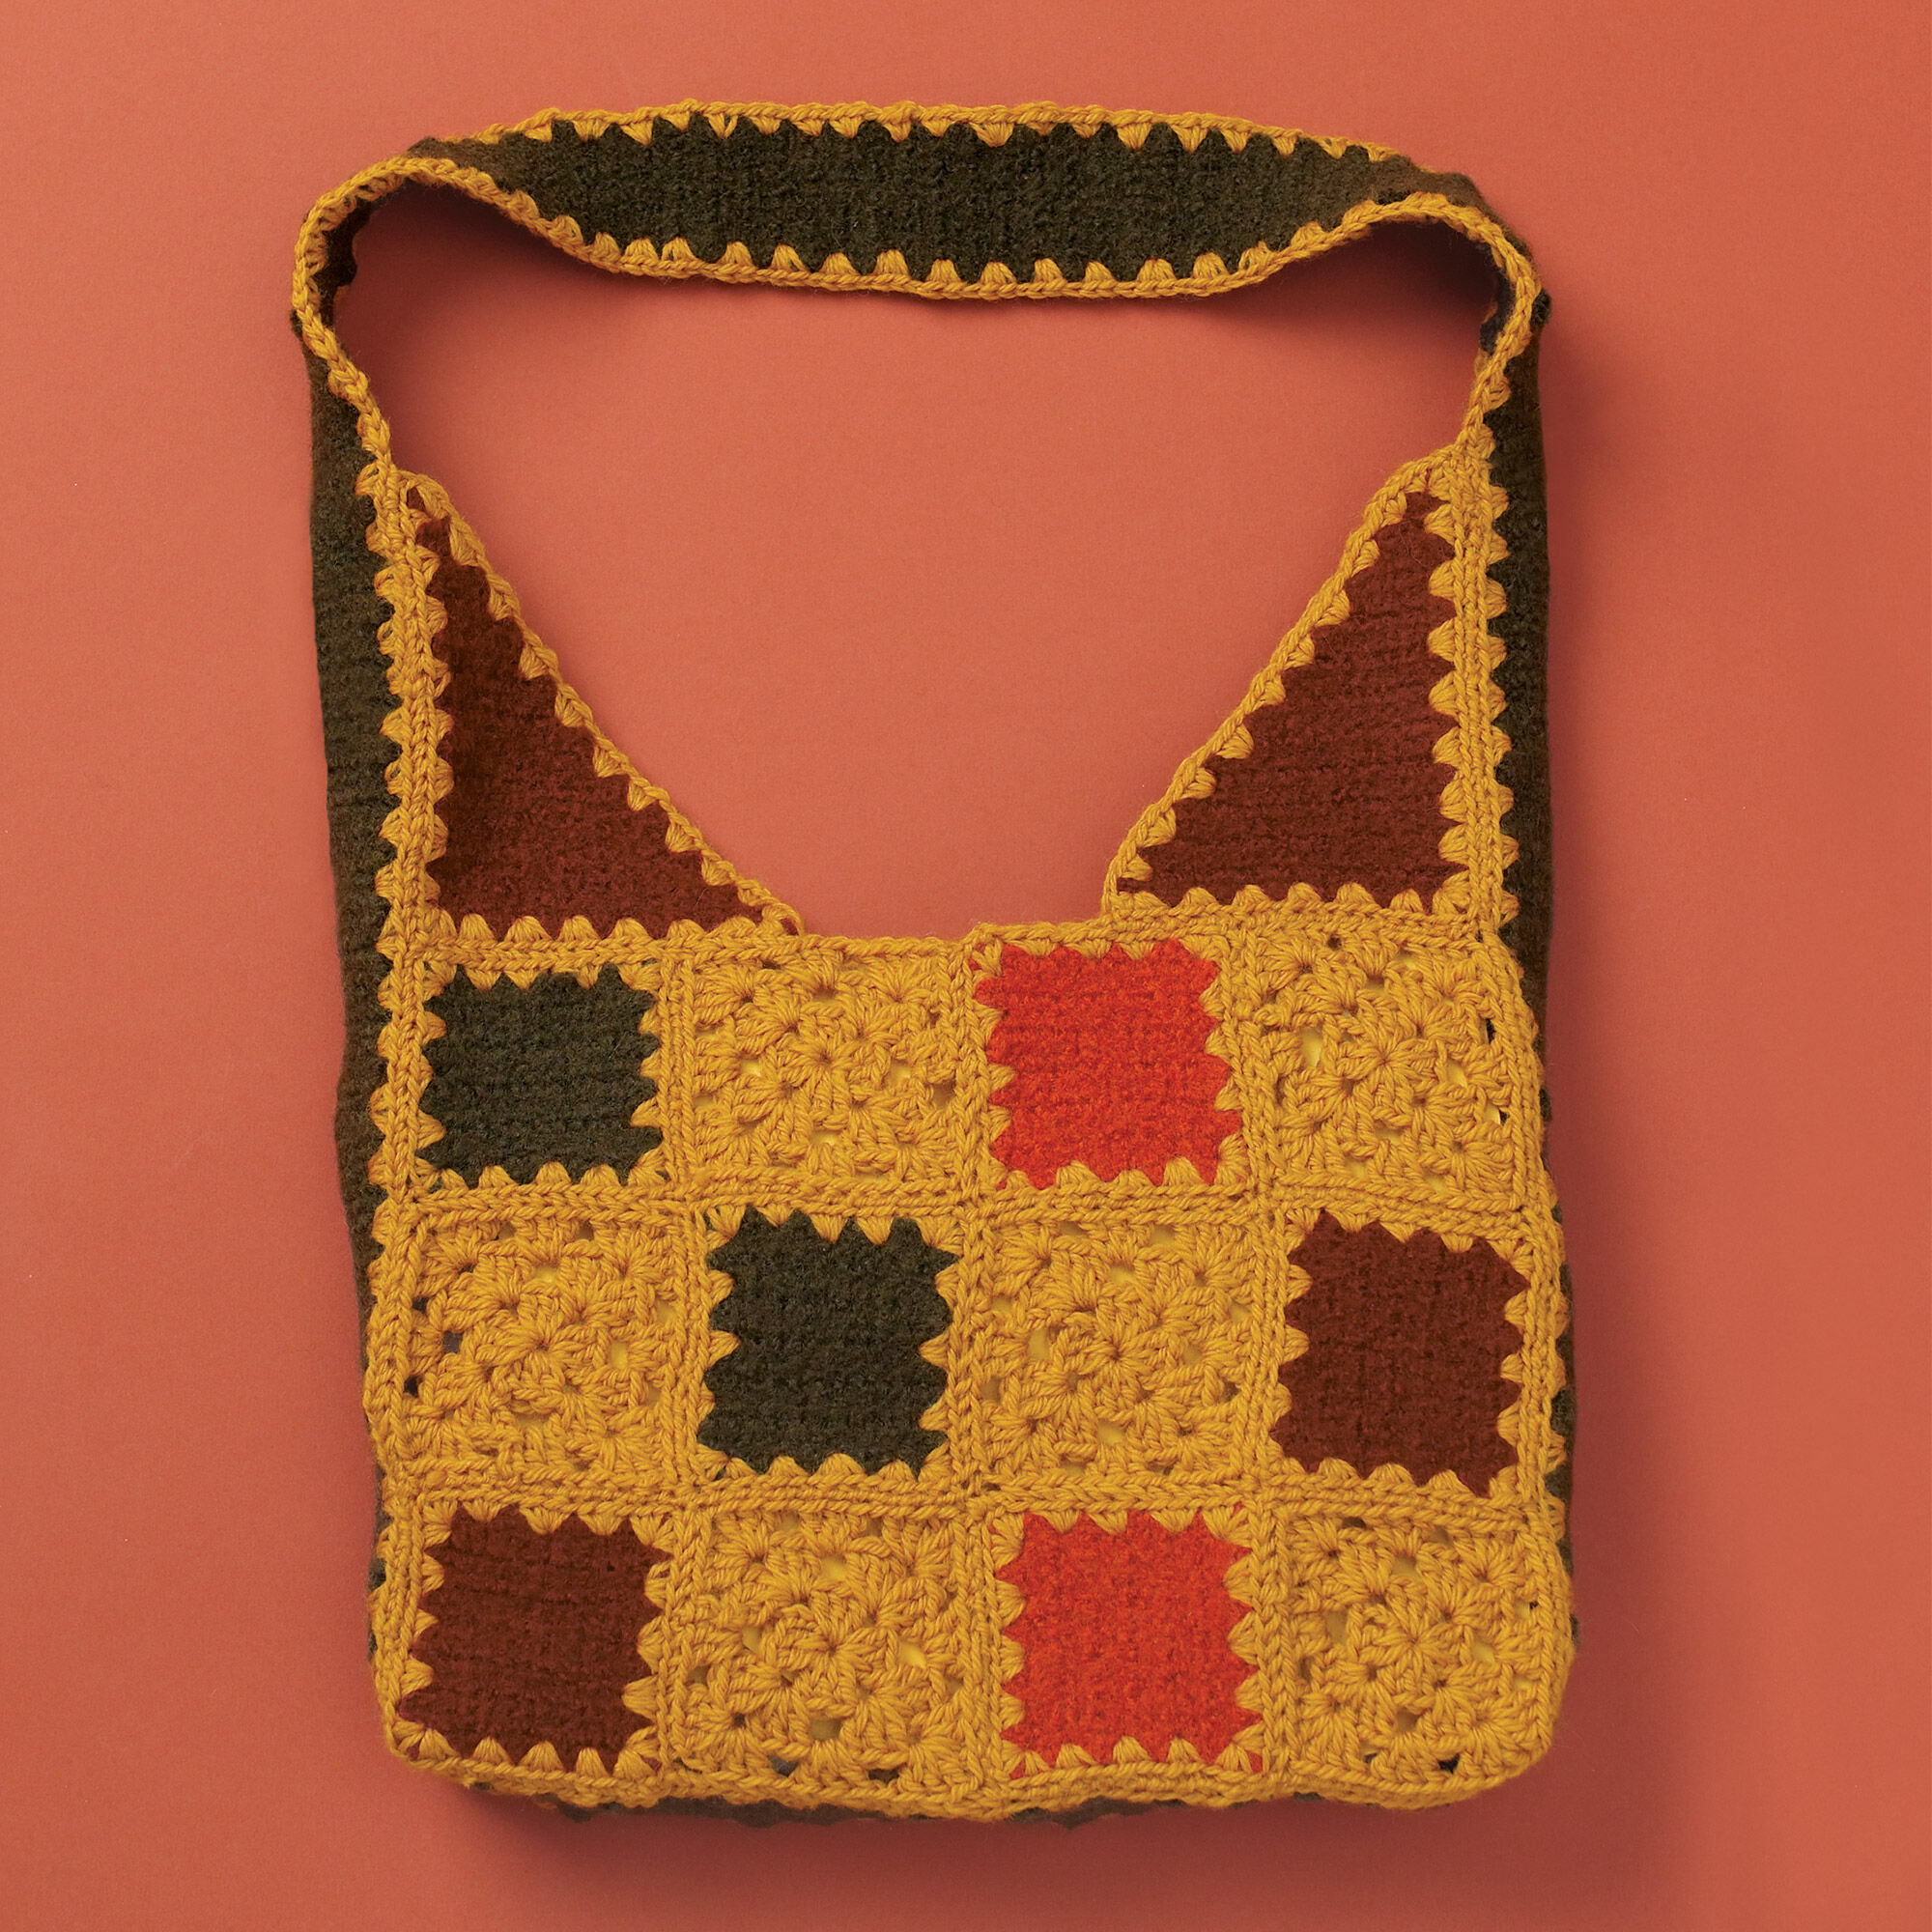 how to make a felted bag